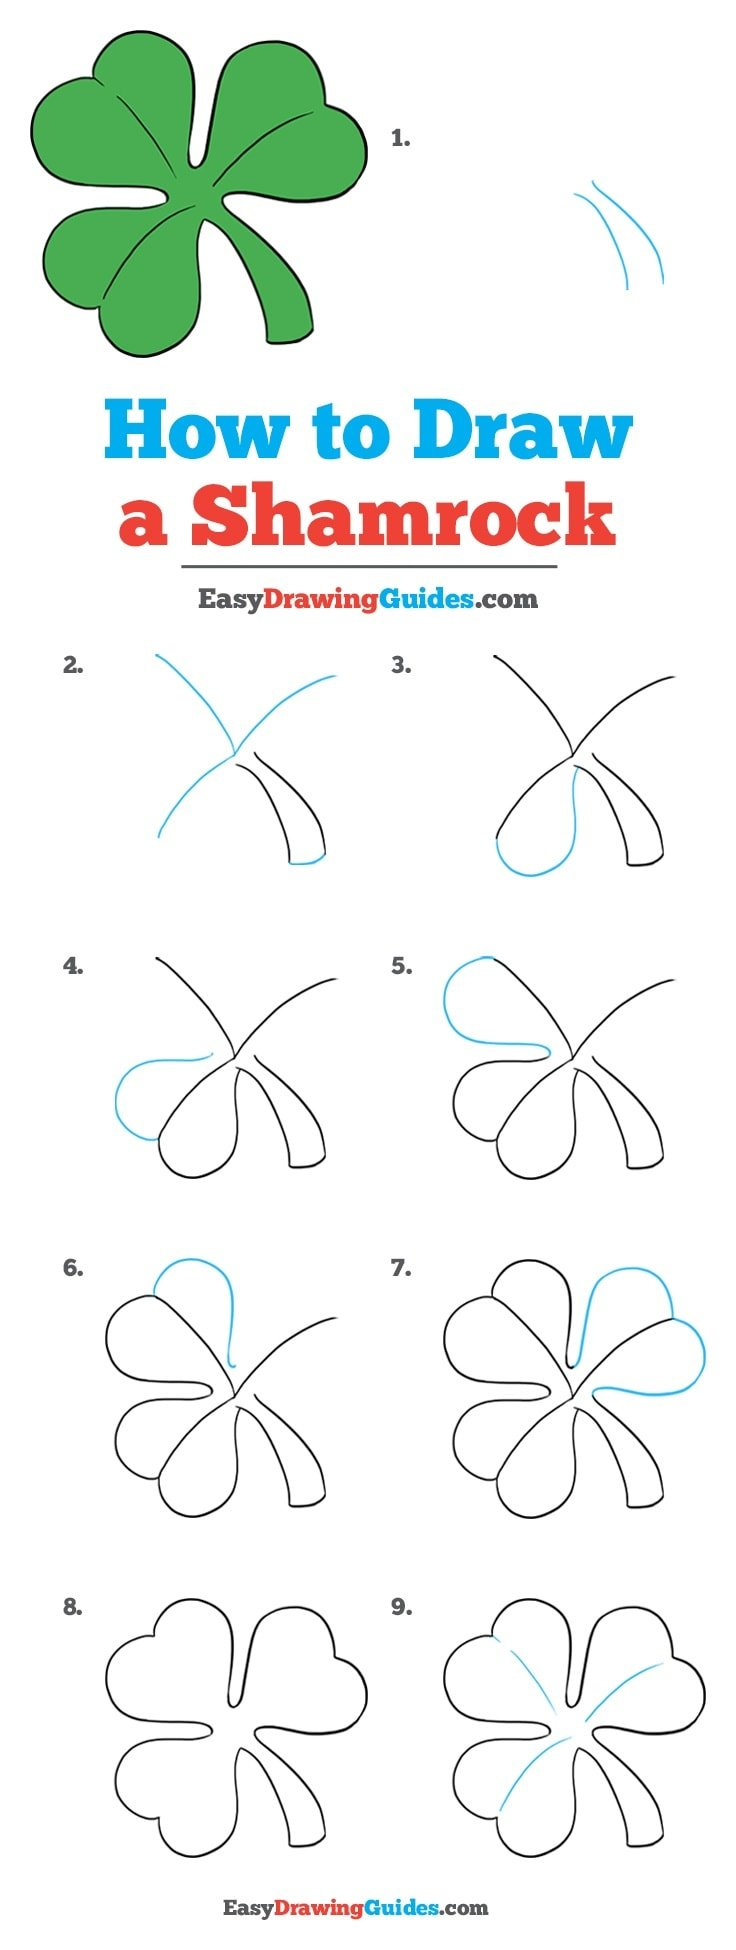 How to Draw a Shamrock: Step by step drawing tutorial